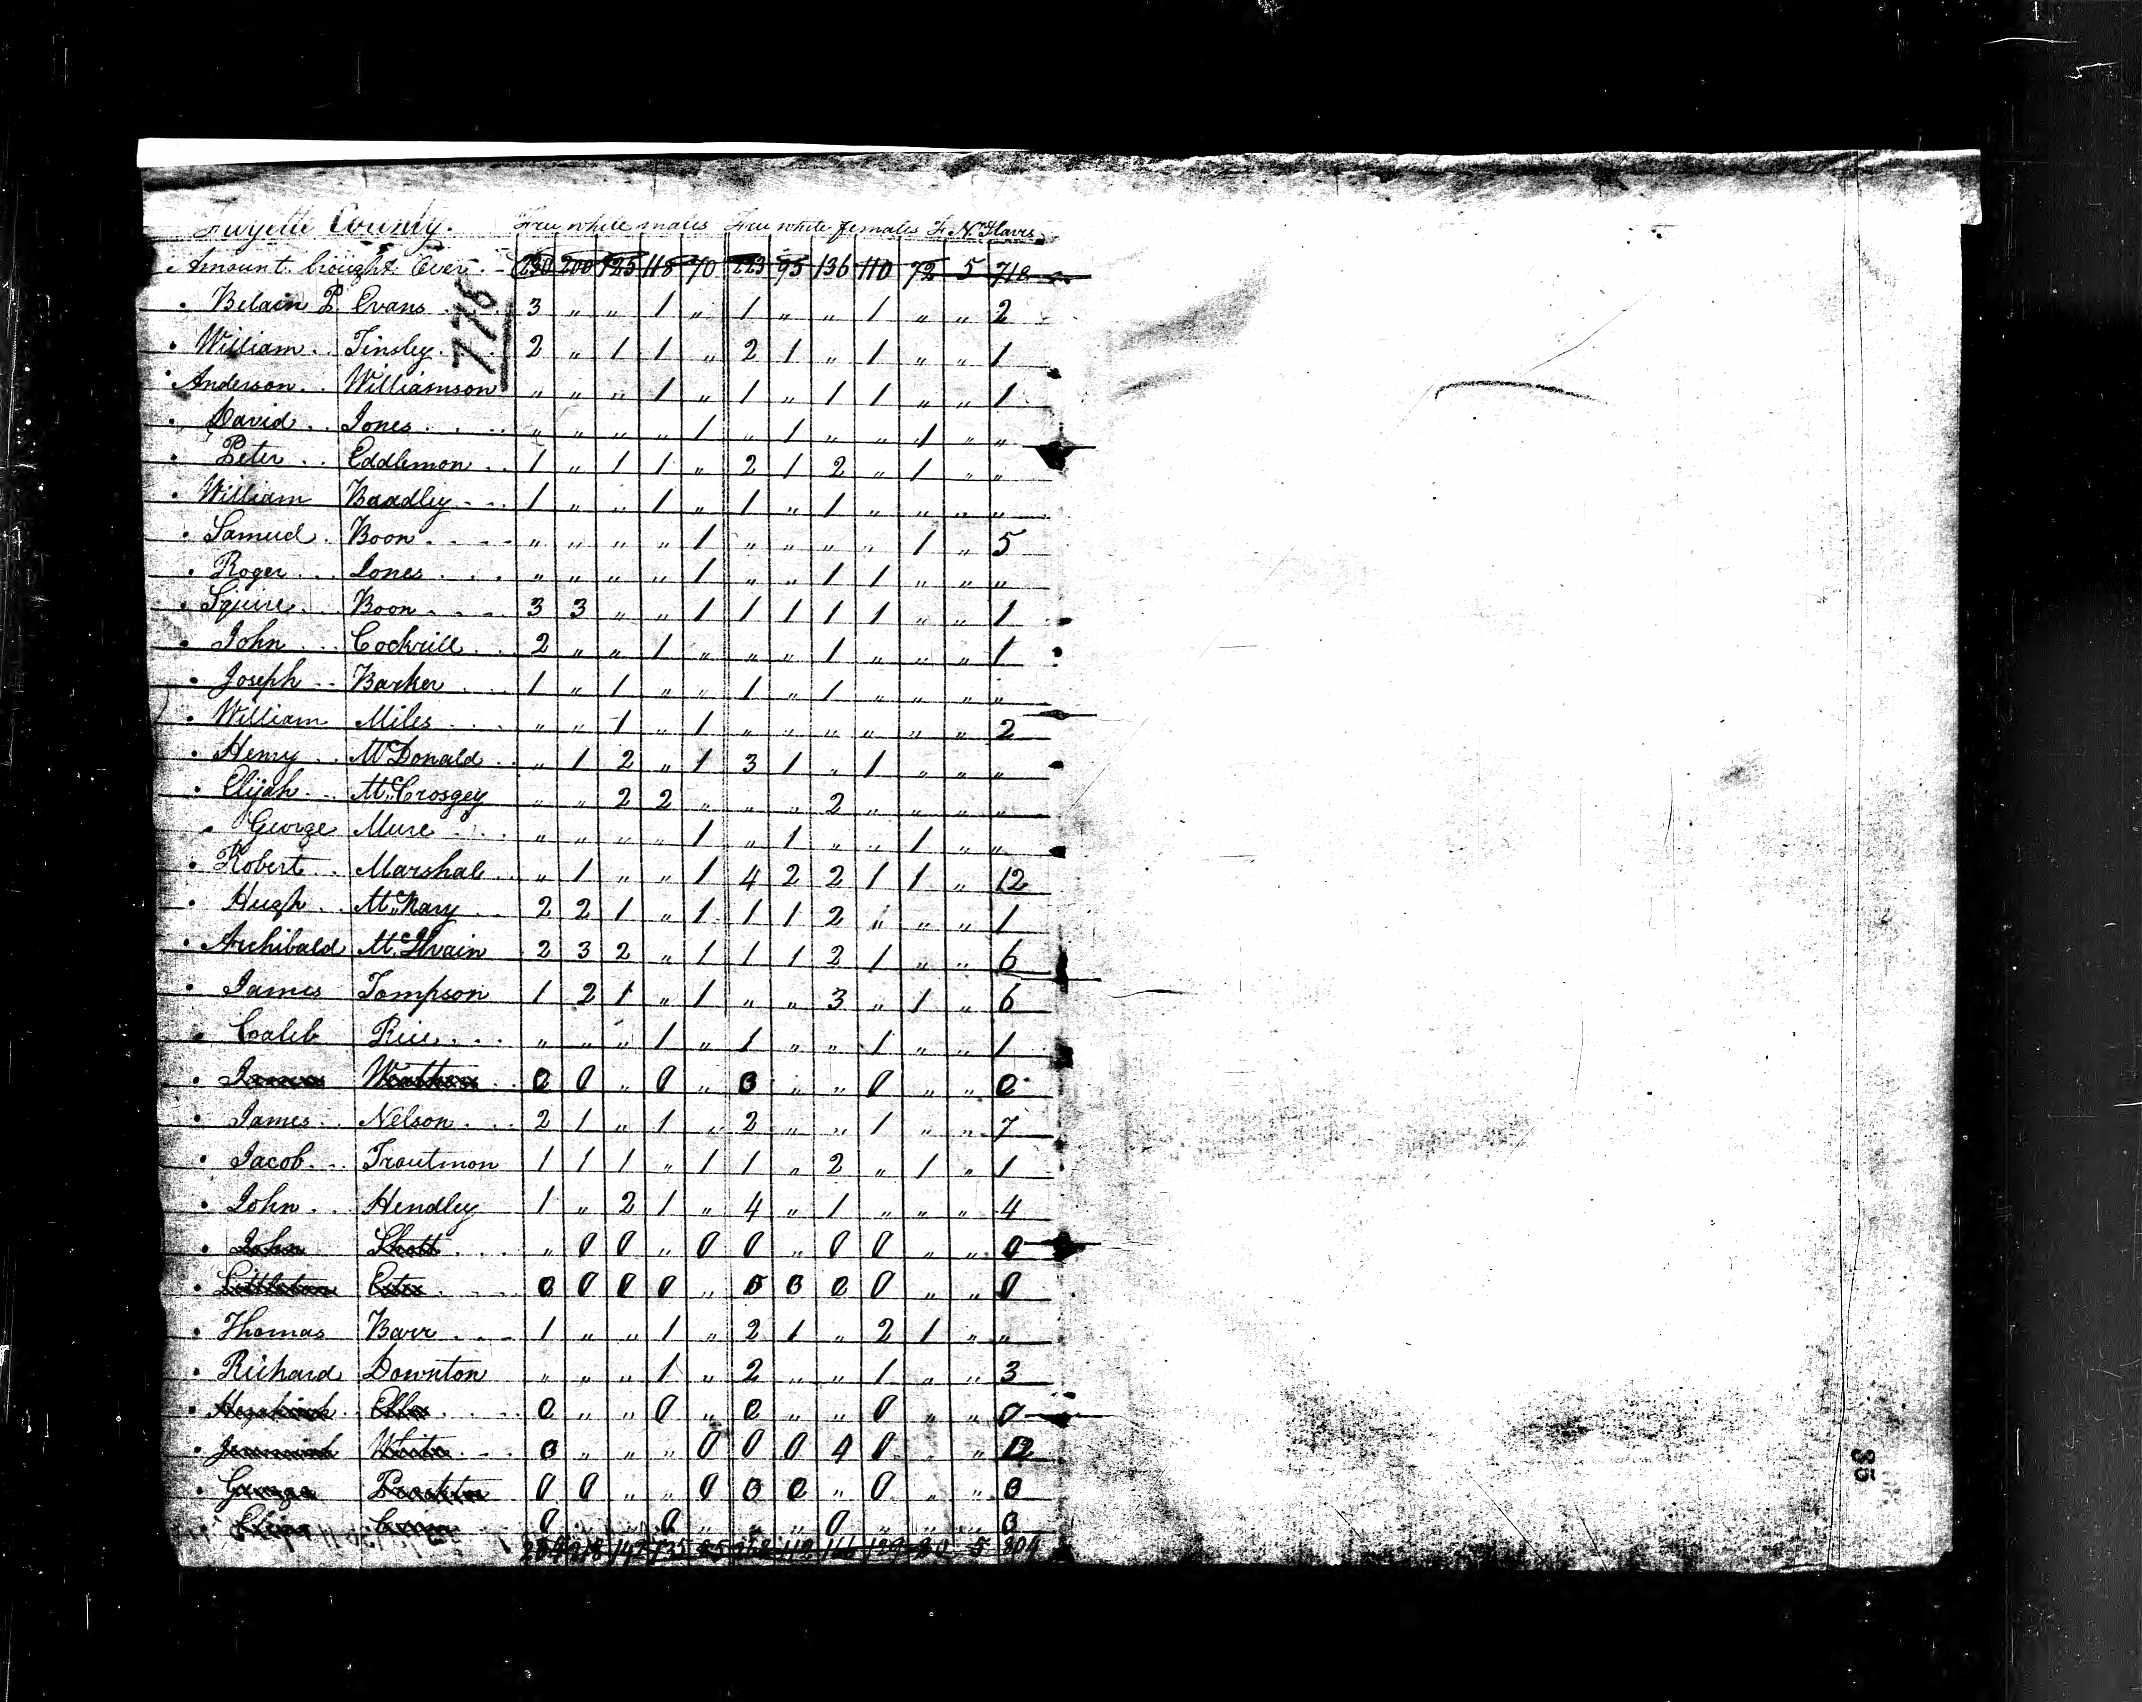 1810 Census - Henry McDonald